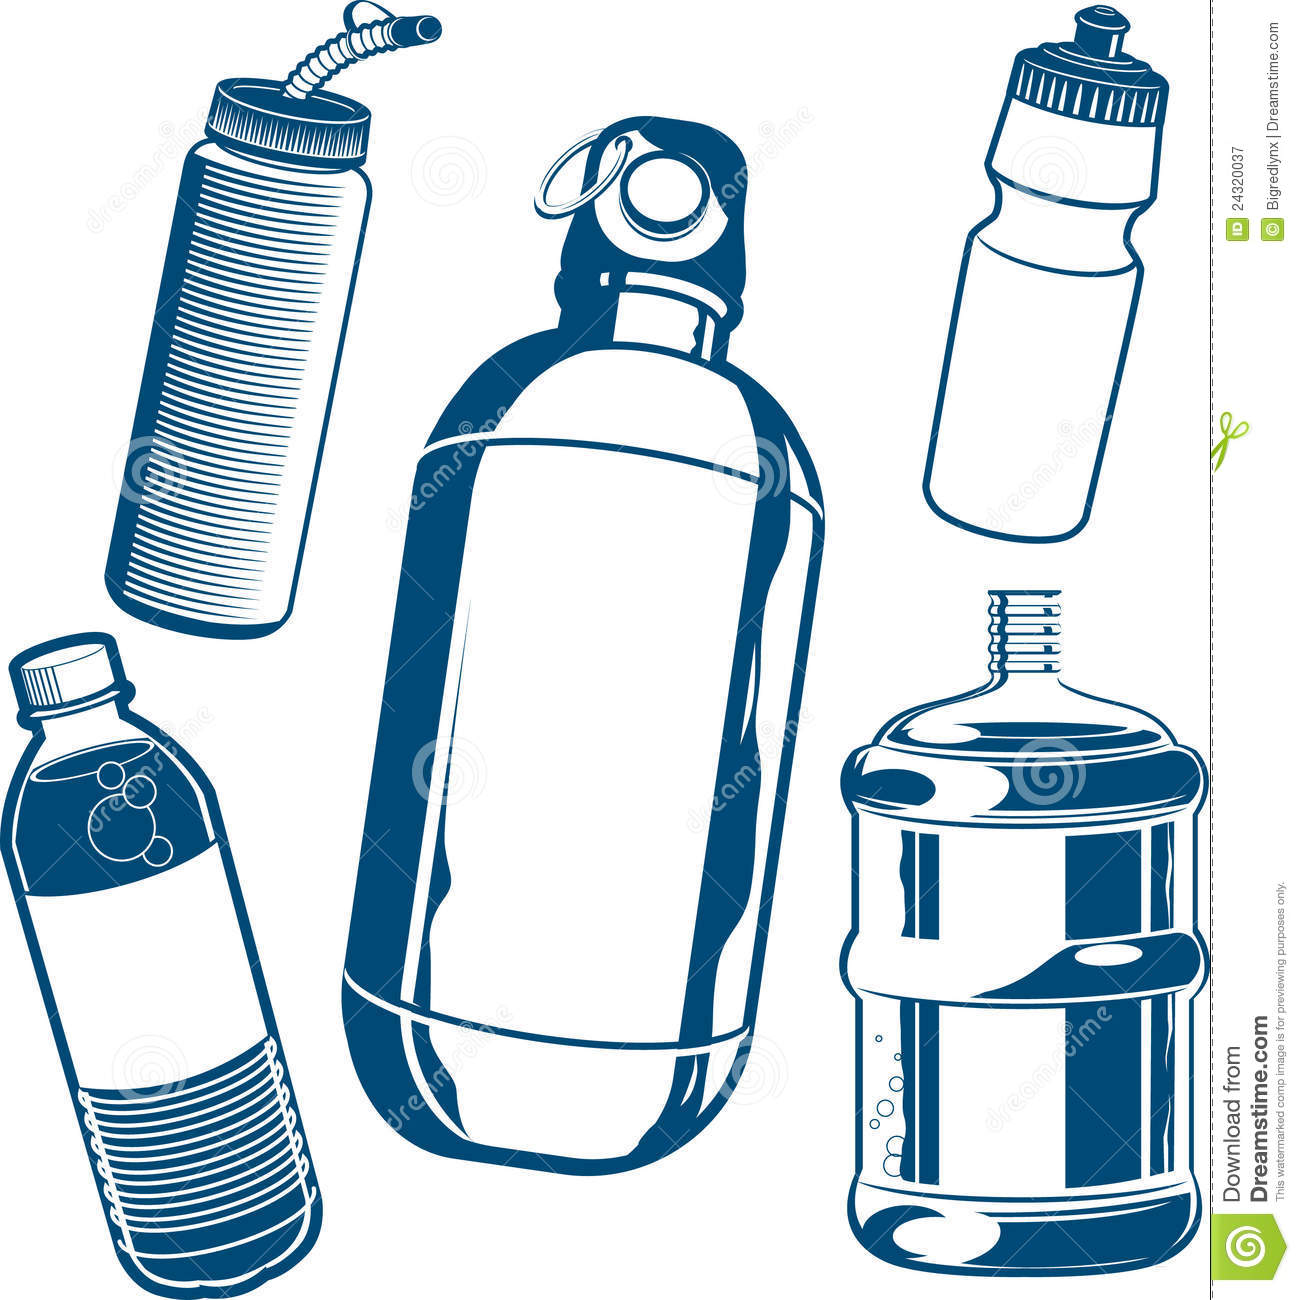 Clipart coms pictures clip art royalty free Plastic Bottle Clip Art Images - Free Clipart clip art royalty free